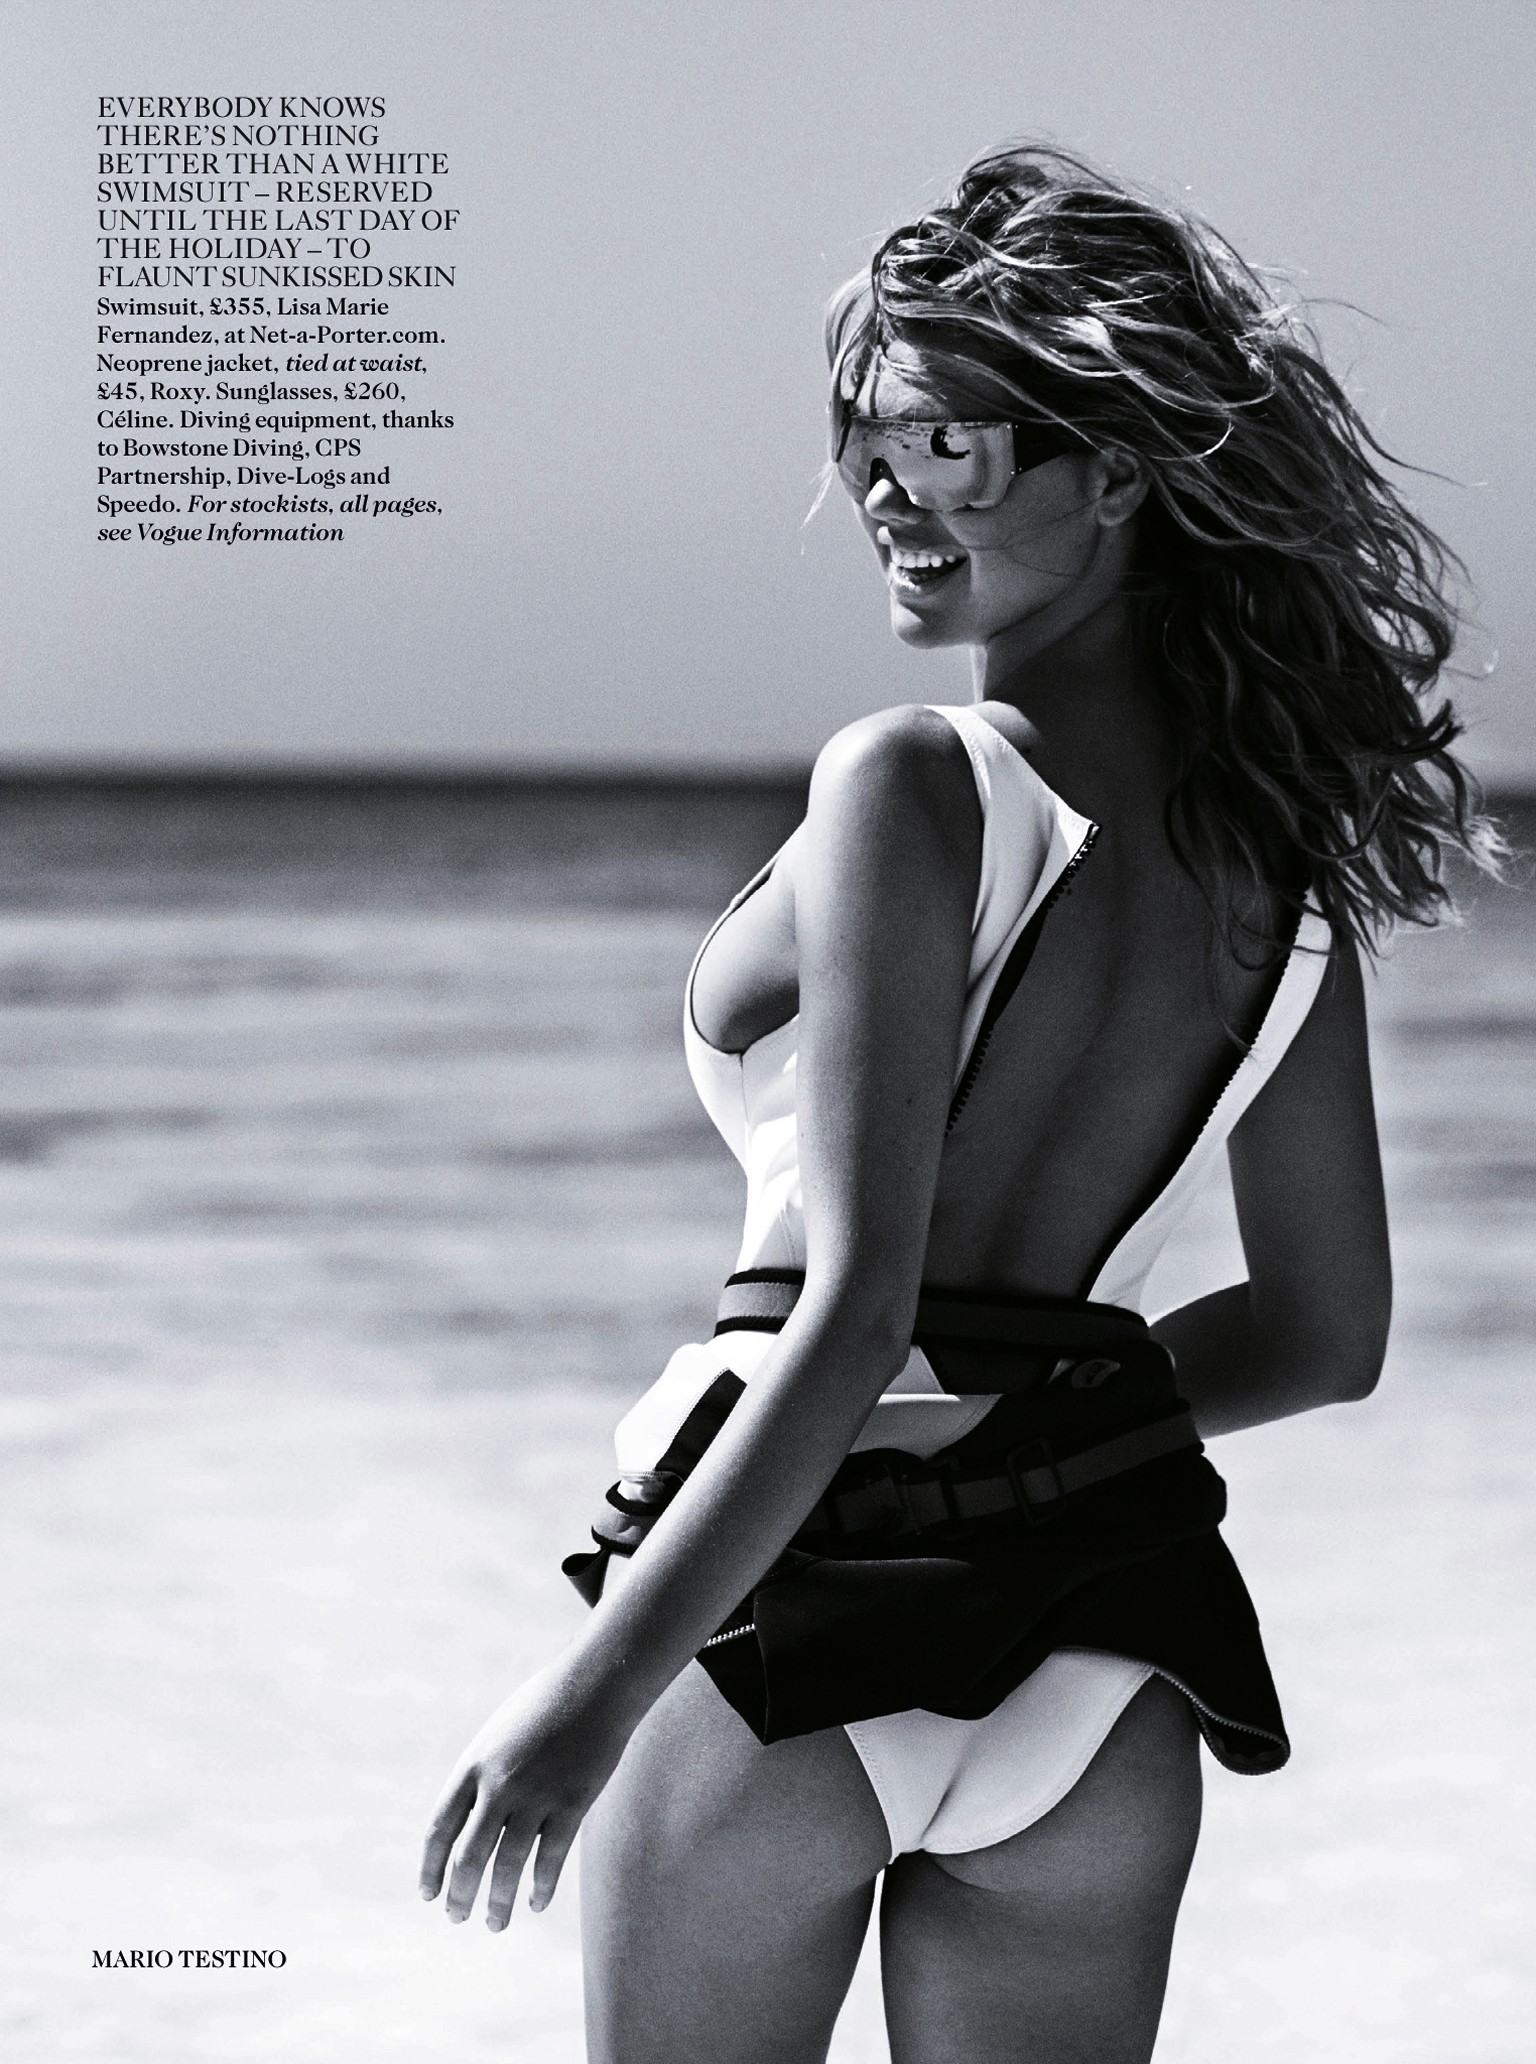 fashion_scans_remastered-kate_upton-vogue_uk-june_2014-scanned_by_vampirehorde-hq-10